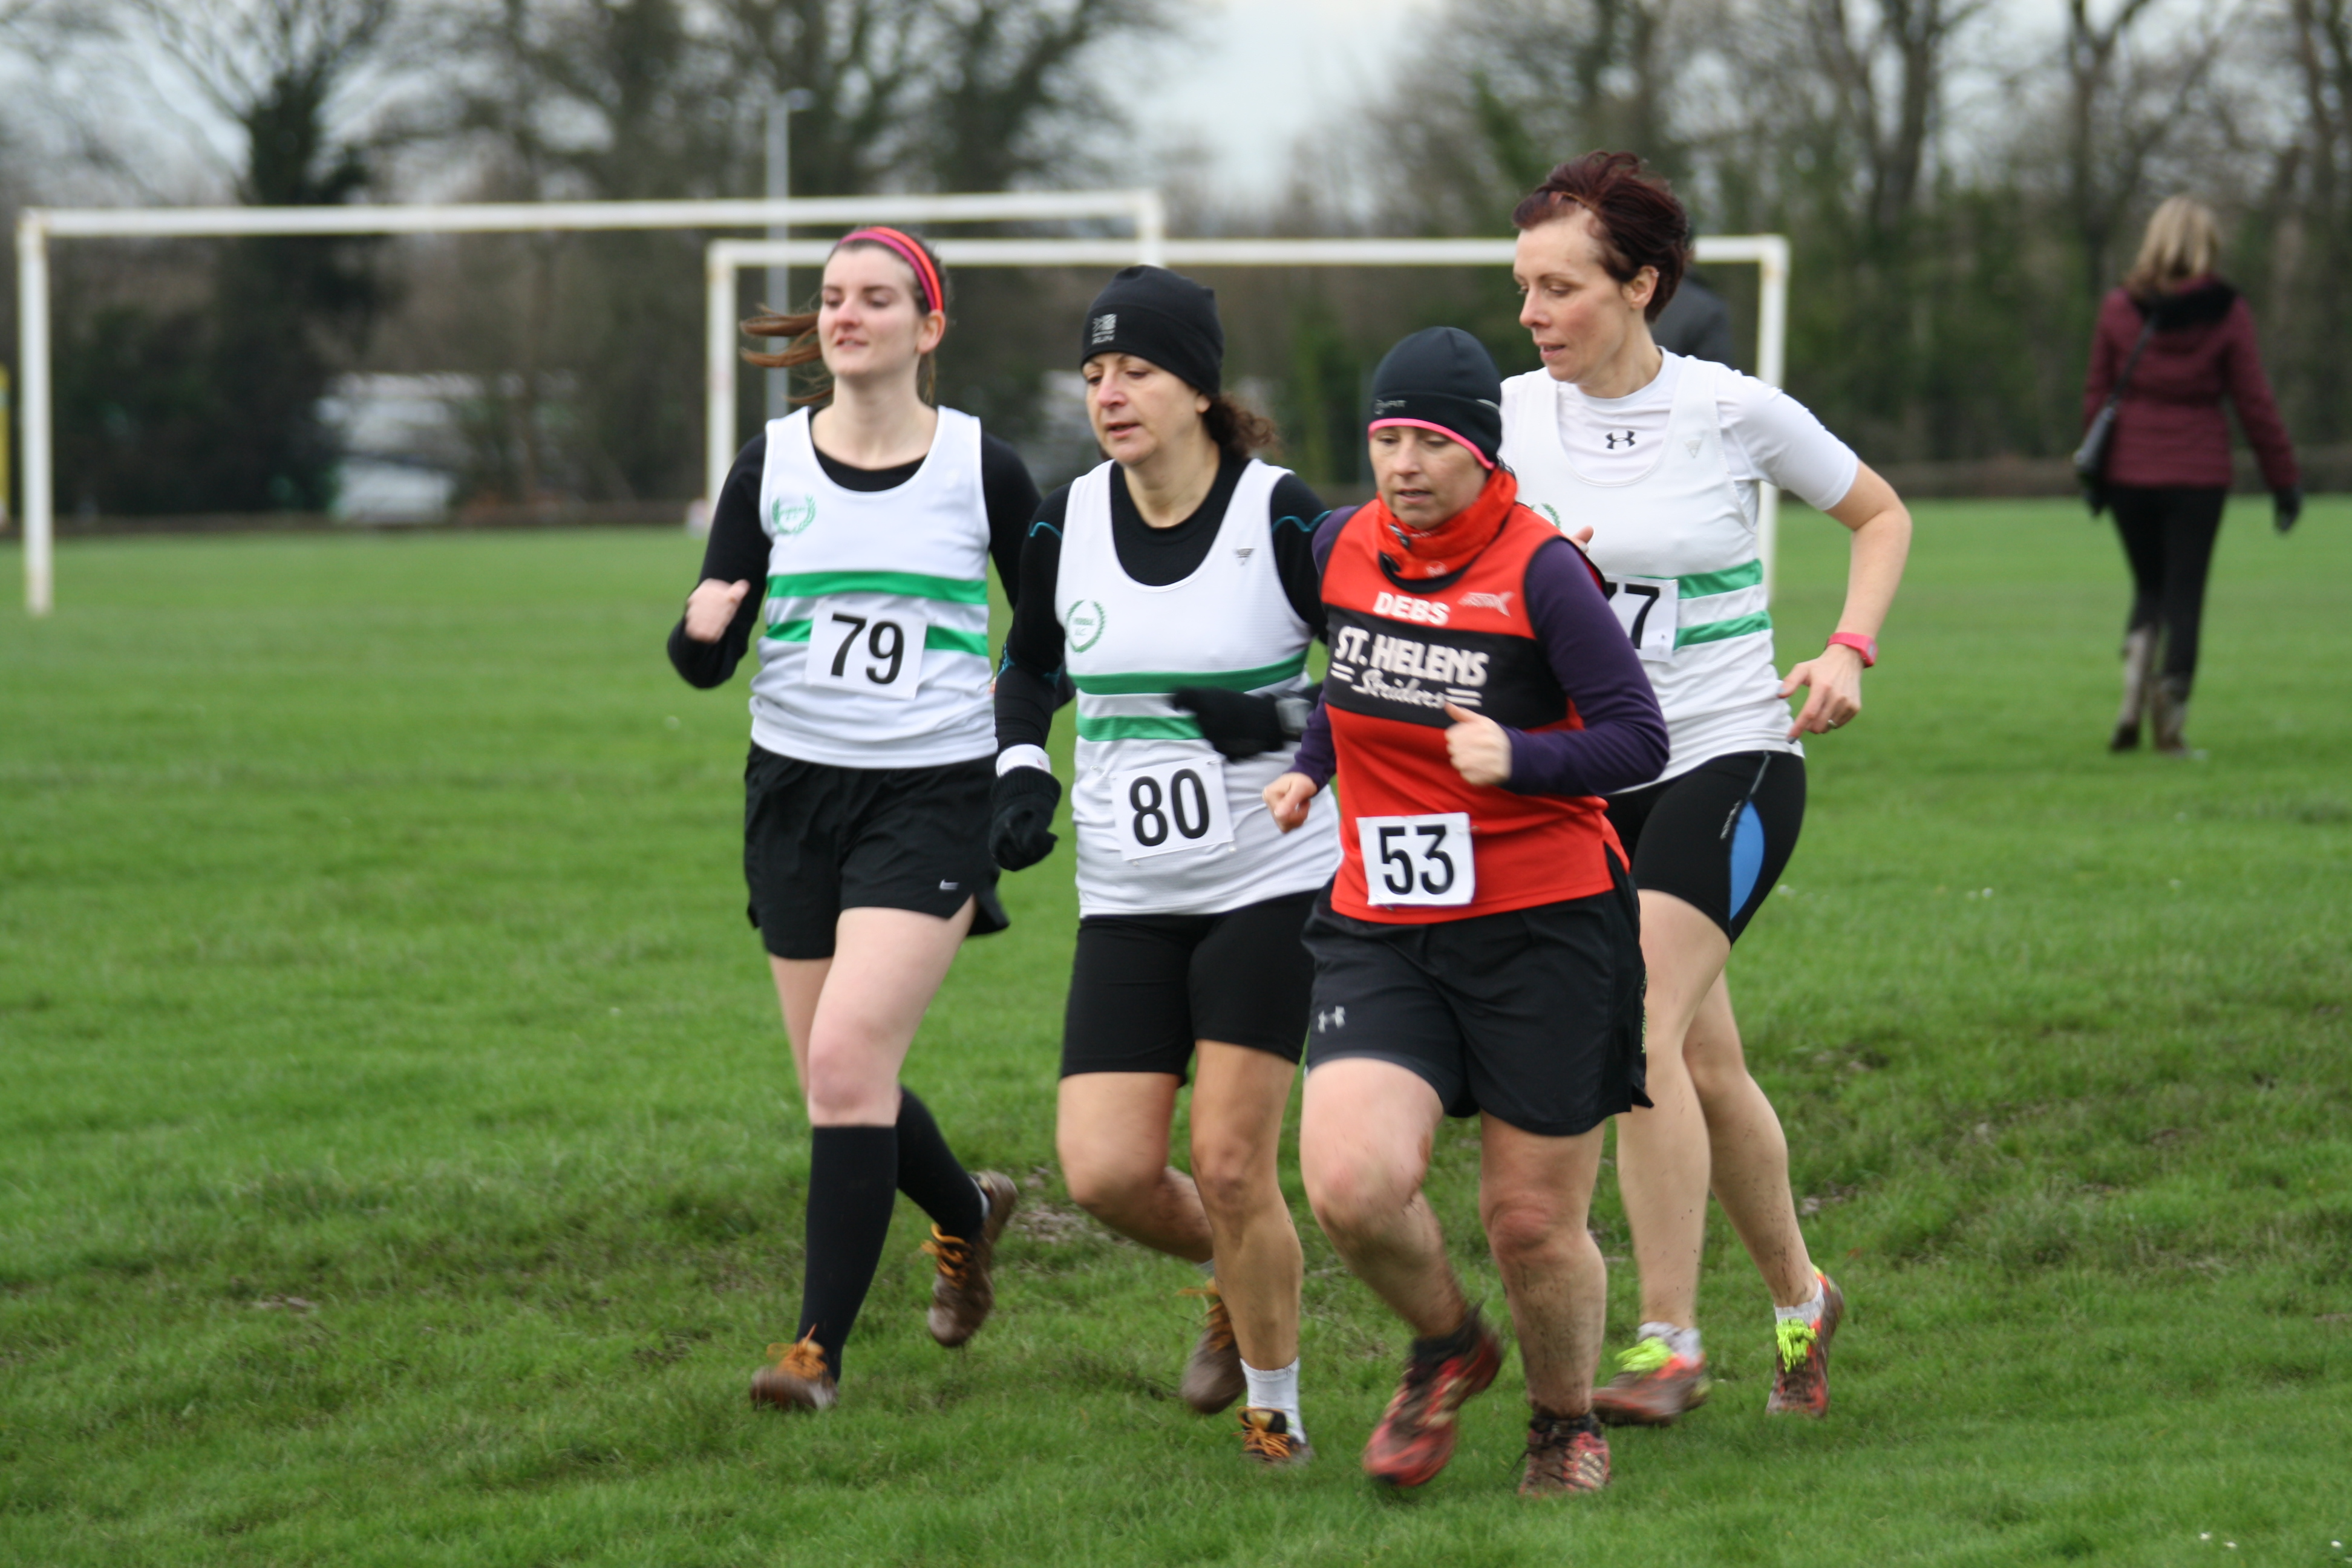 Merseyside-Cross-Country-Champs-2016-462